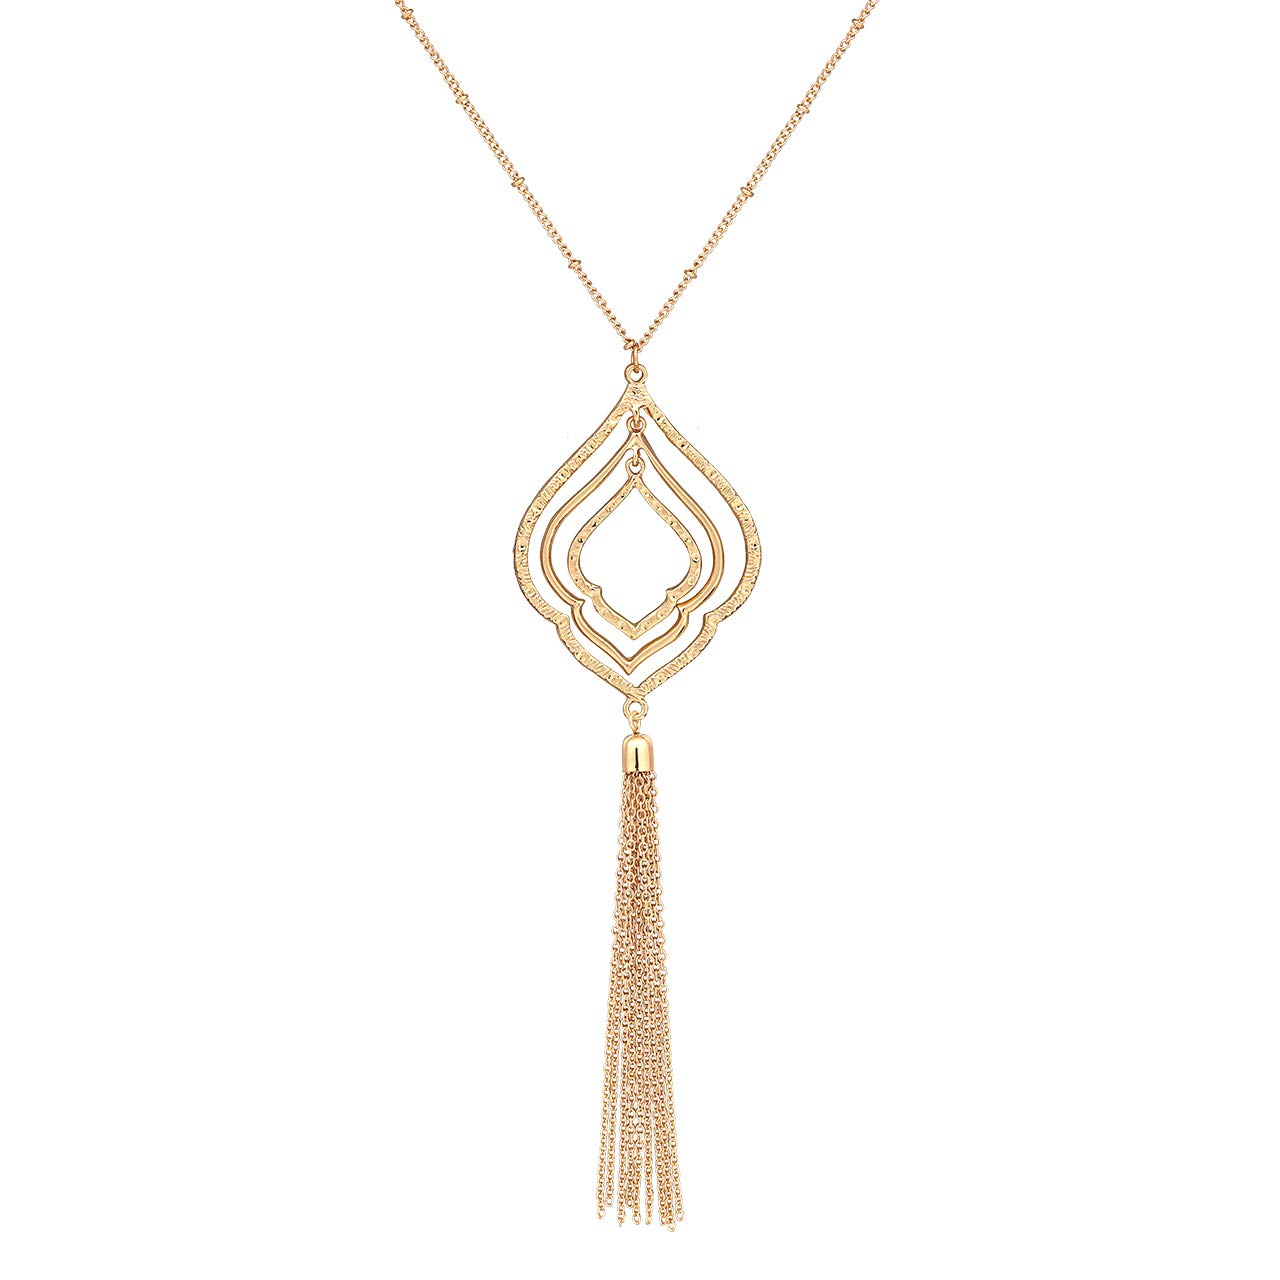 Amazon.com  YOUMI Long Tassel Pendant Y Necklace Hollow Out Layered Rhombus  Leaf Drop Necklace Lariat Chain Jewelry for Women (Gold)  Jewelry 85834ddecd05